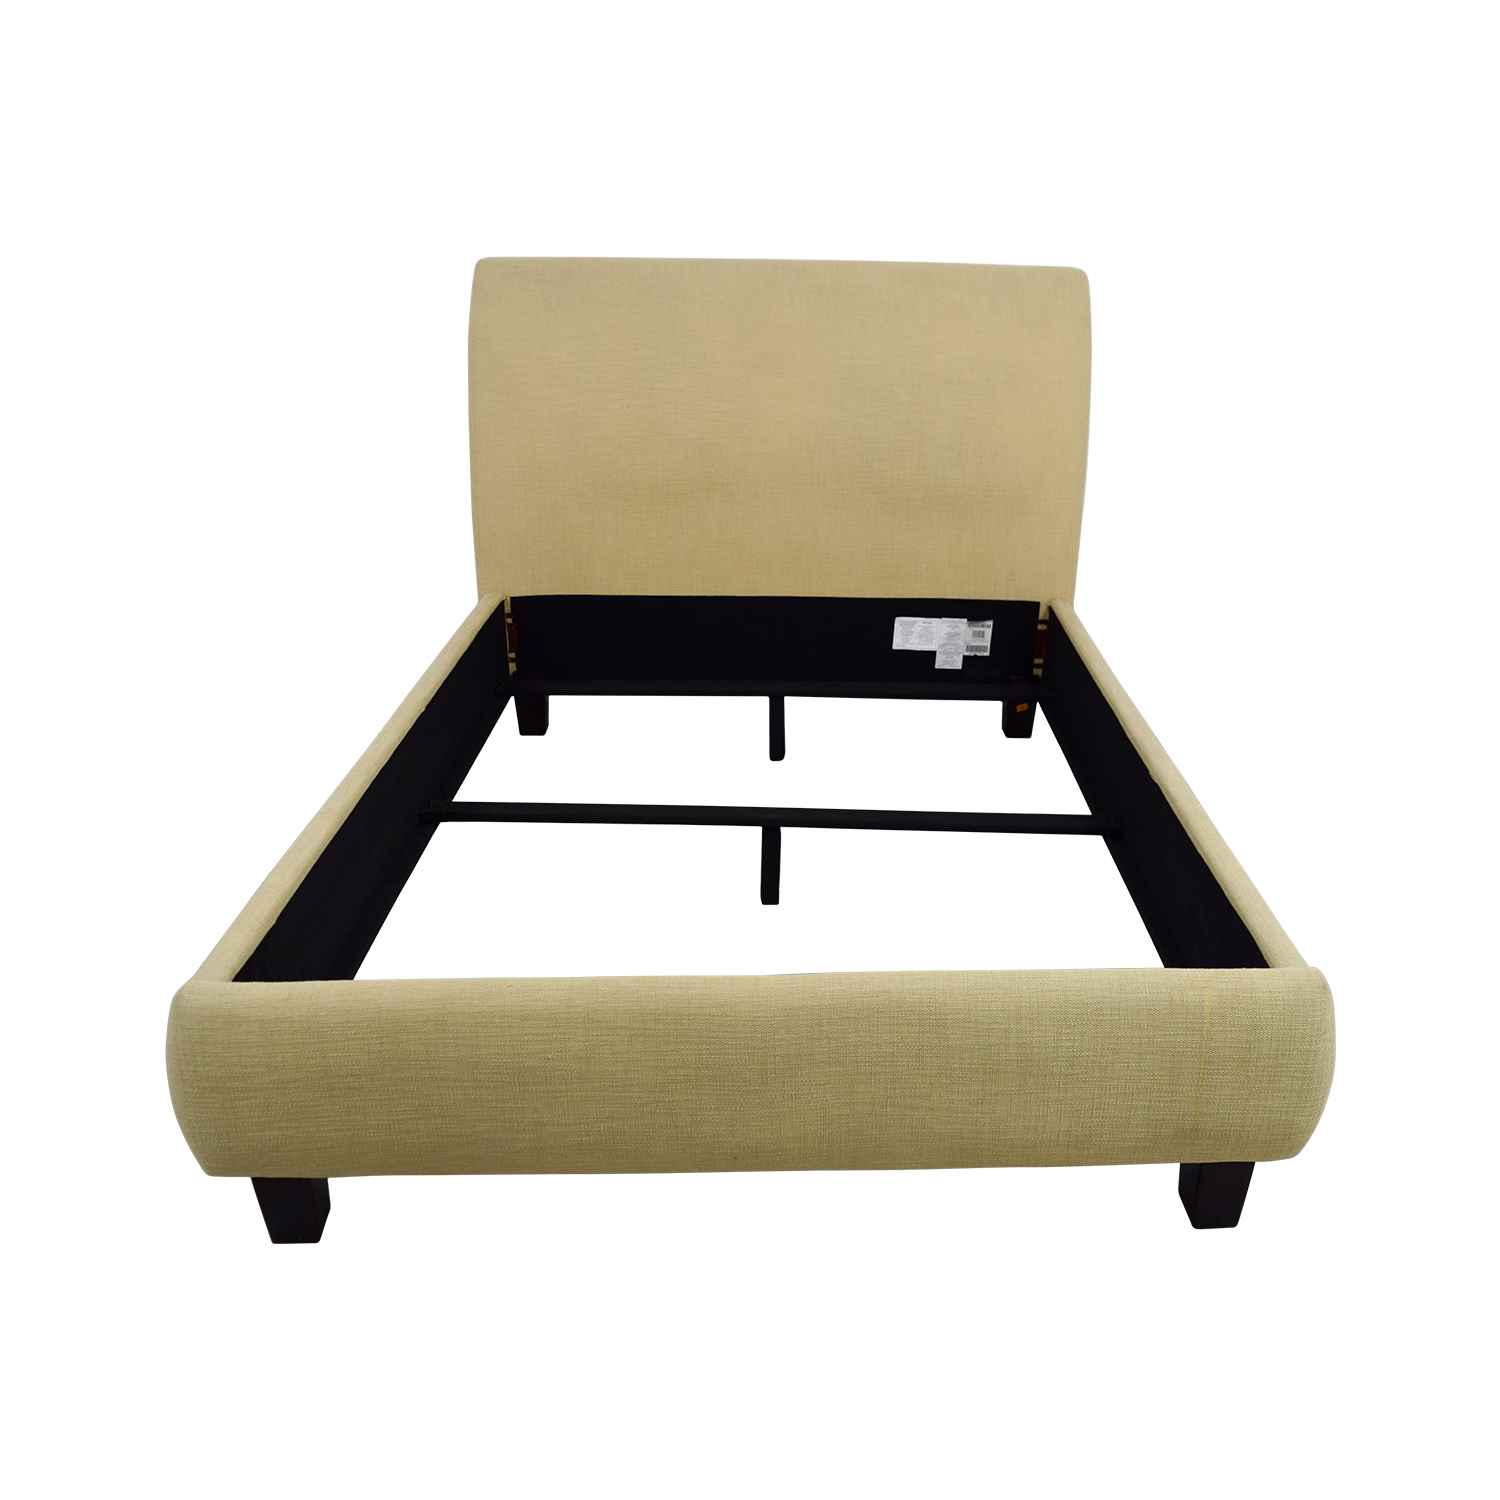 Ashley Furniture Ashley Furniture Upholstered Queen Bed second hand